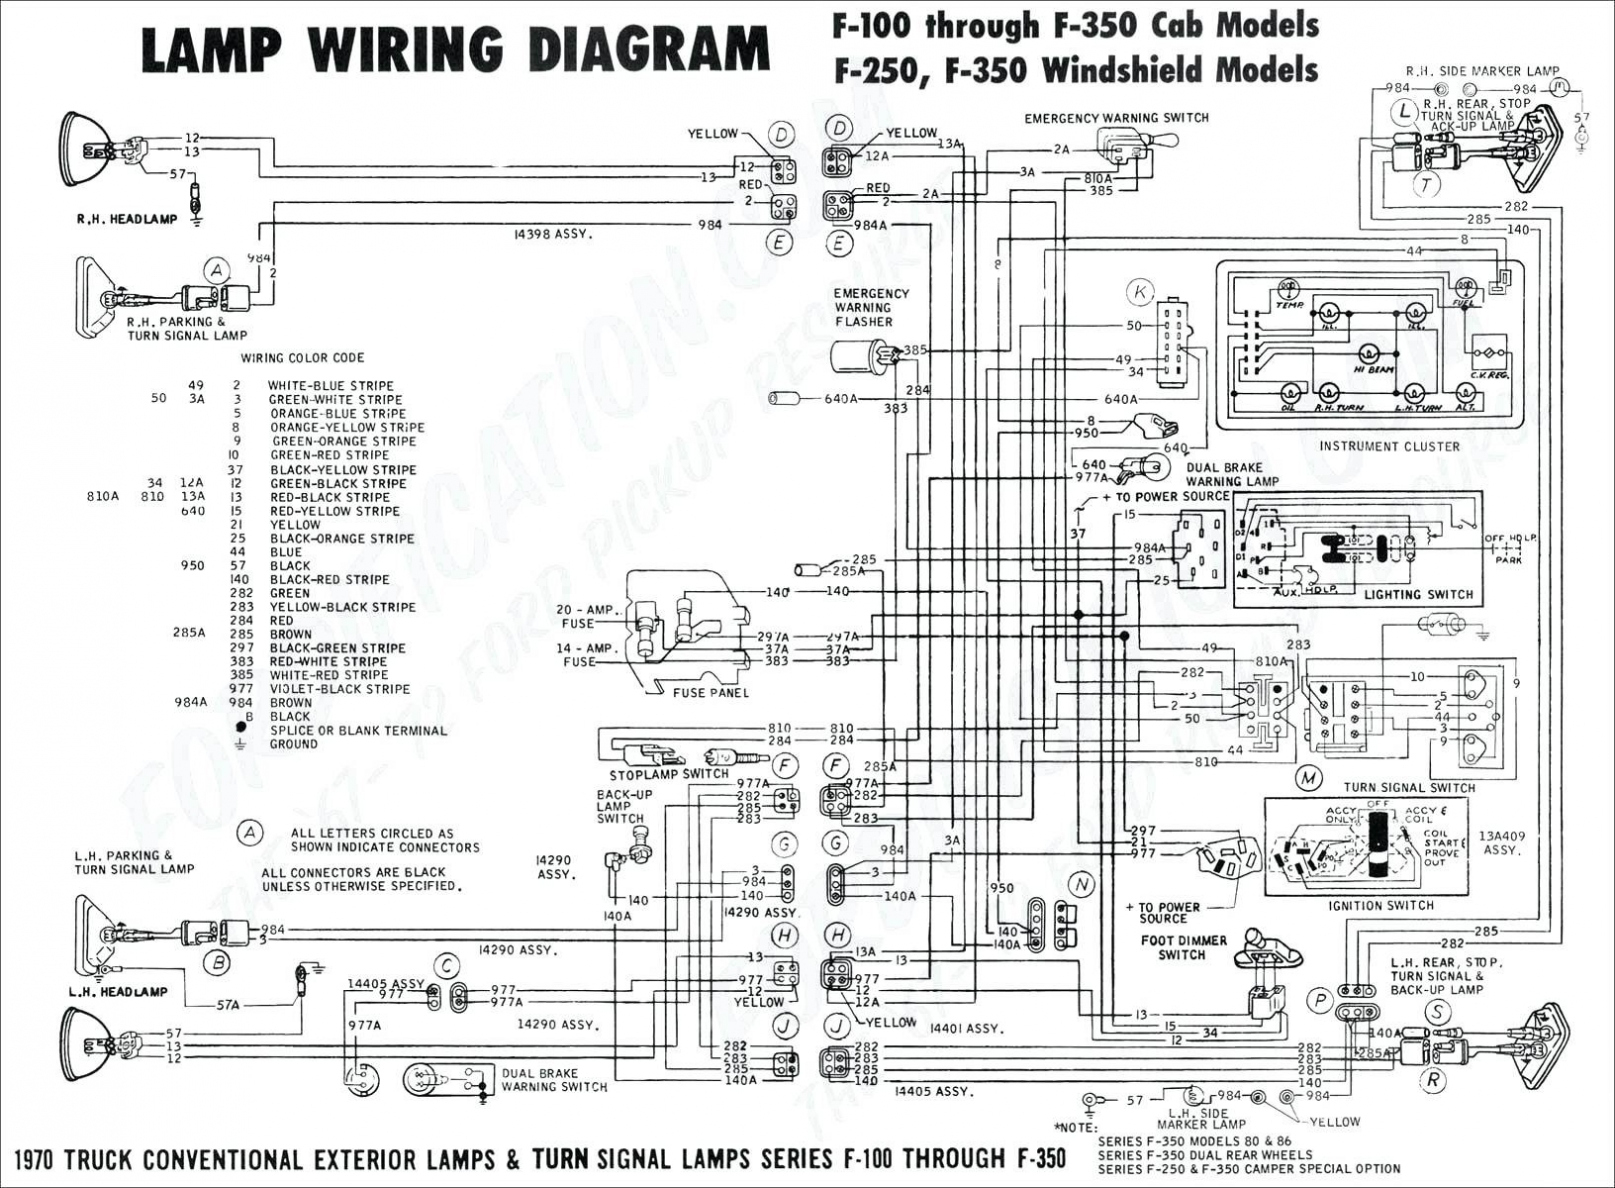 Llv Wiring Diagram - Wiring Diagram Shw